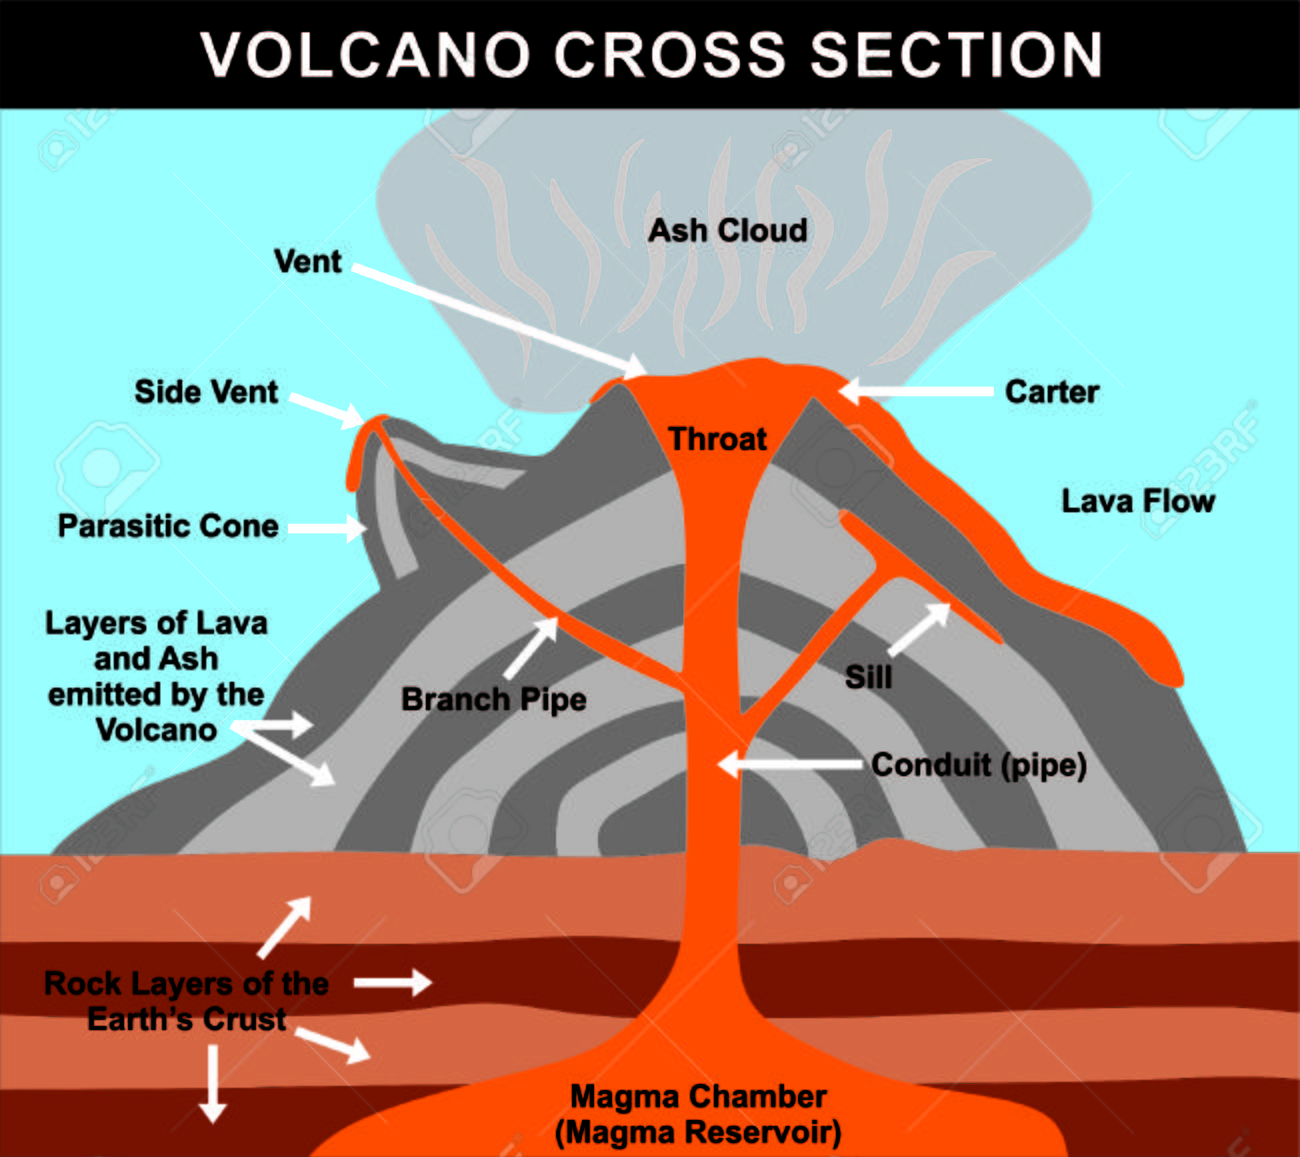 Volcano Cross Section Including All Parts Magma Chamber Reservoir Earth Diagram For Pinterest Vector Rock Layers Of Crust Conduit Branch Pipe Sill Side Vent Carter